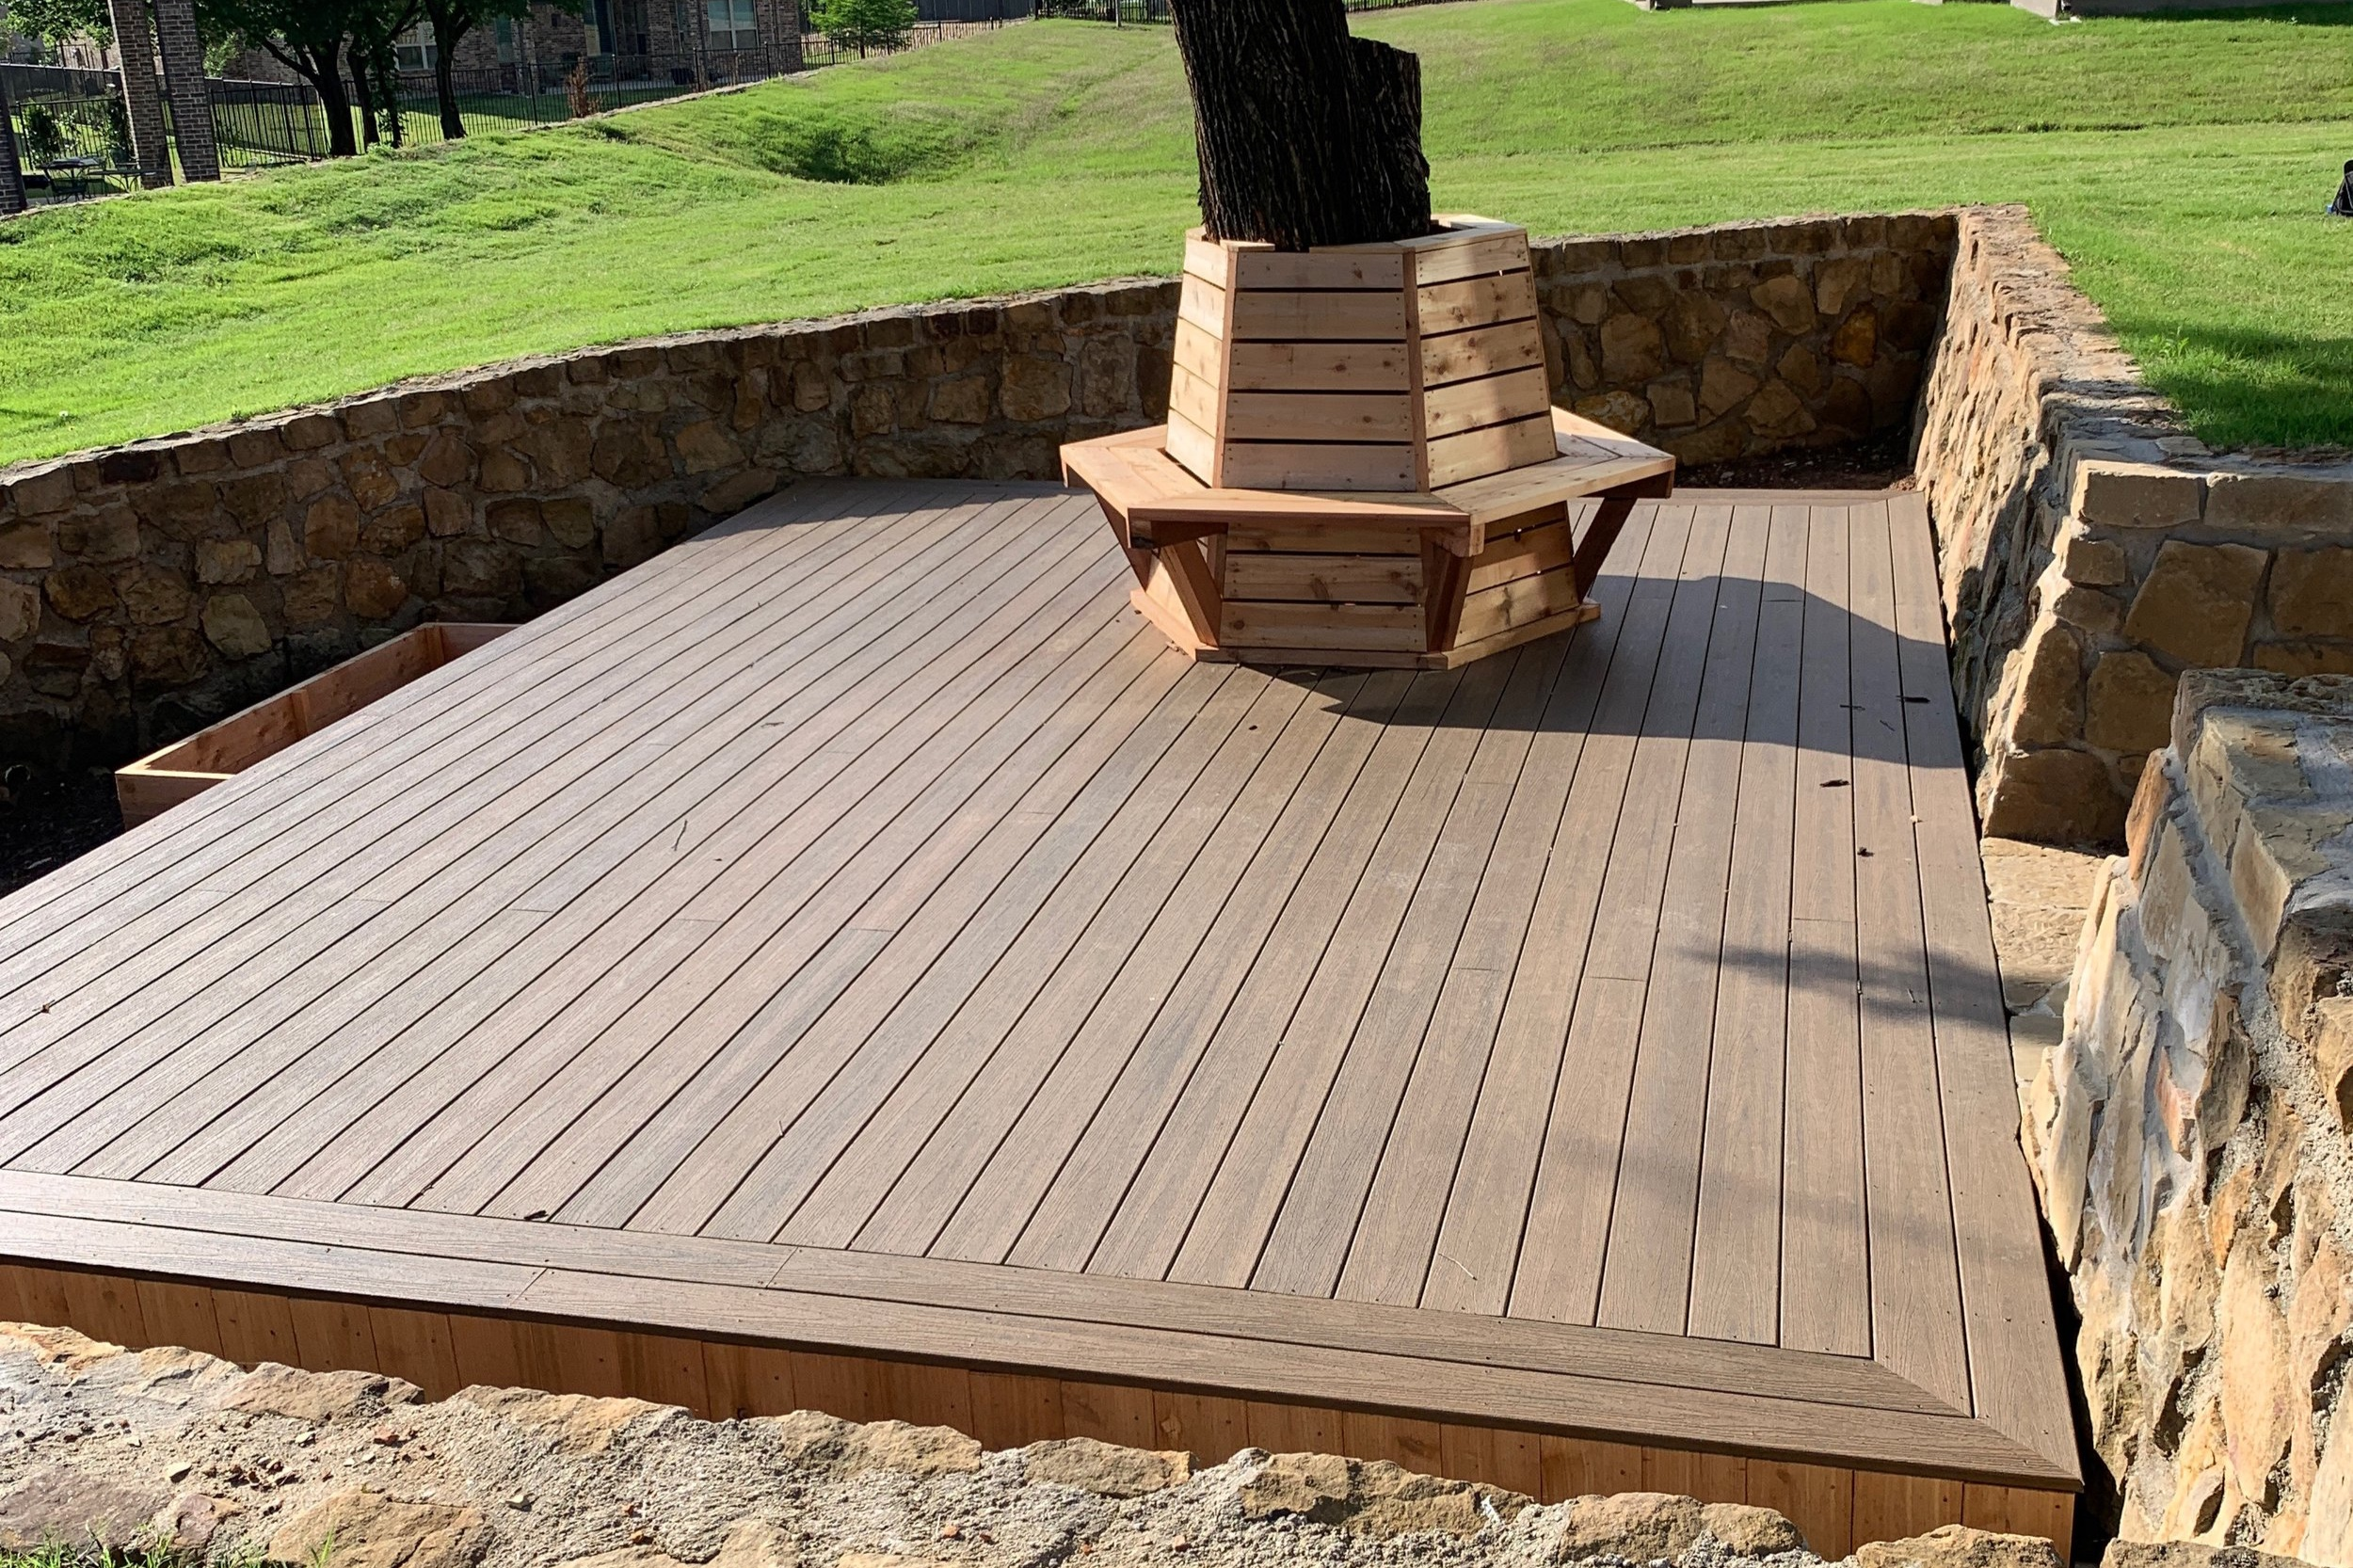 Deck completed - ready for landscaping